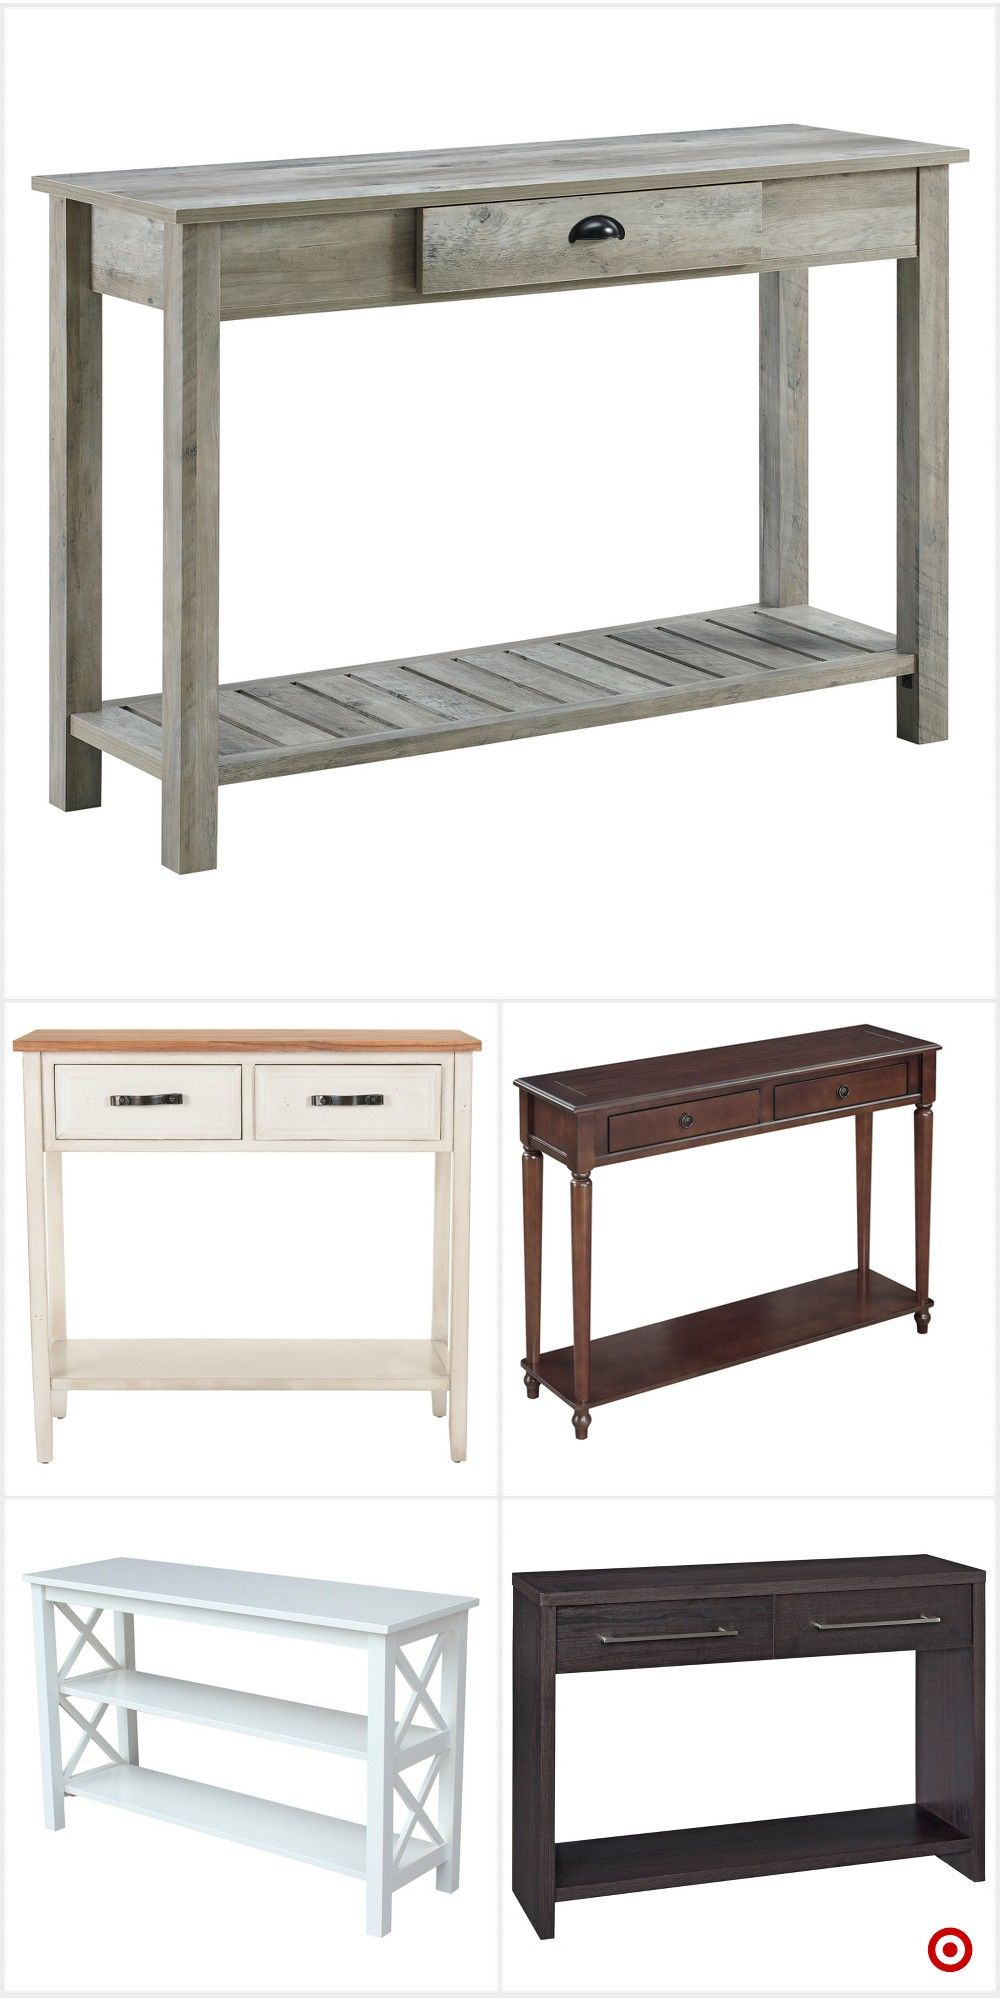 Shop Target For Console Table You Will Love At Great Low Prices